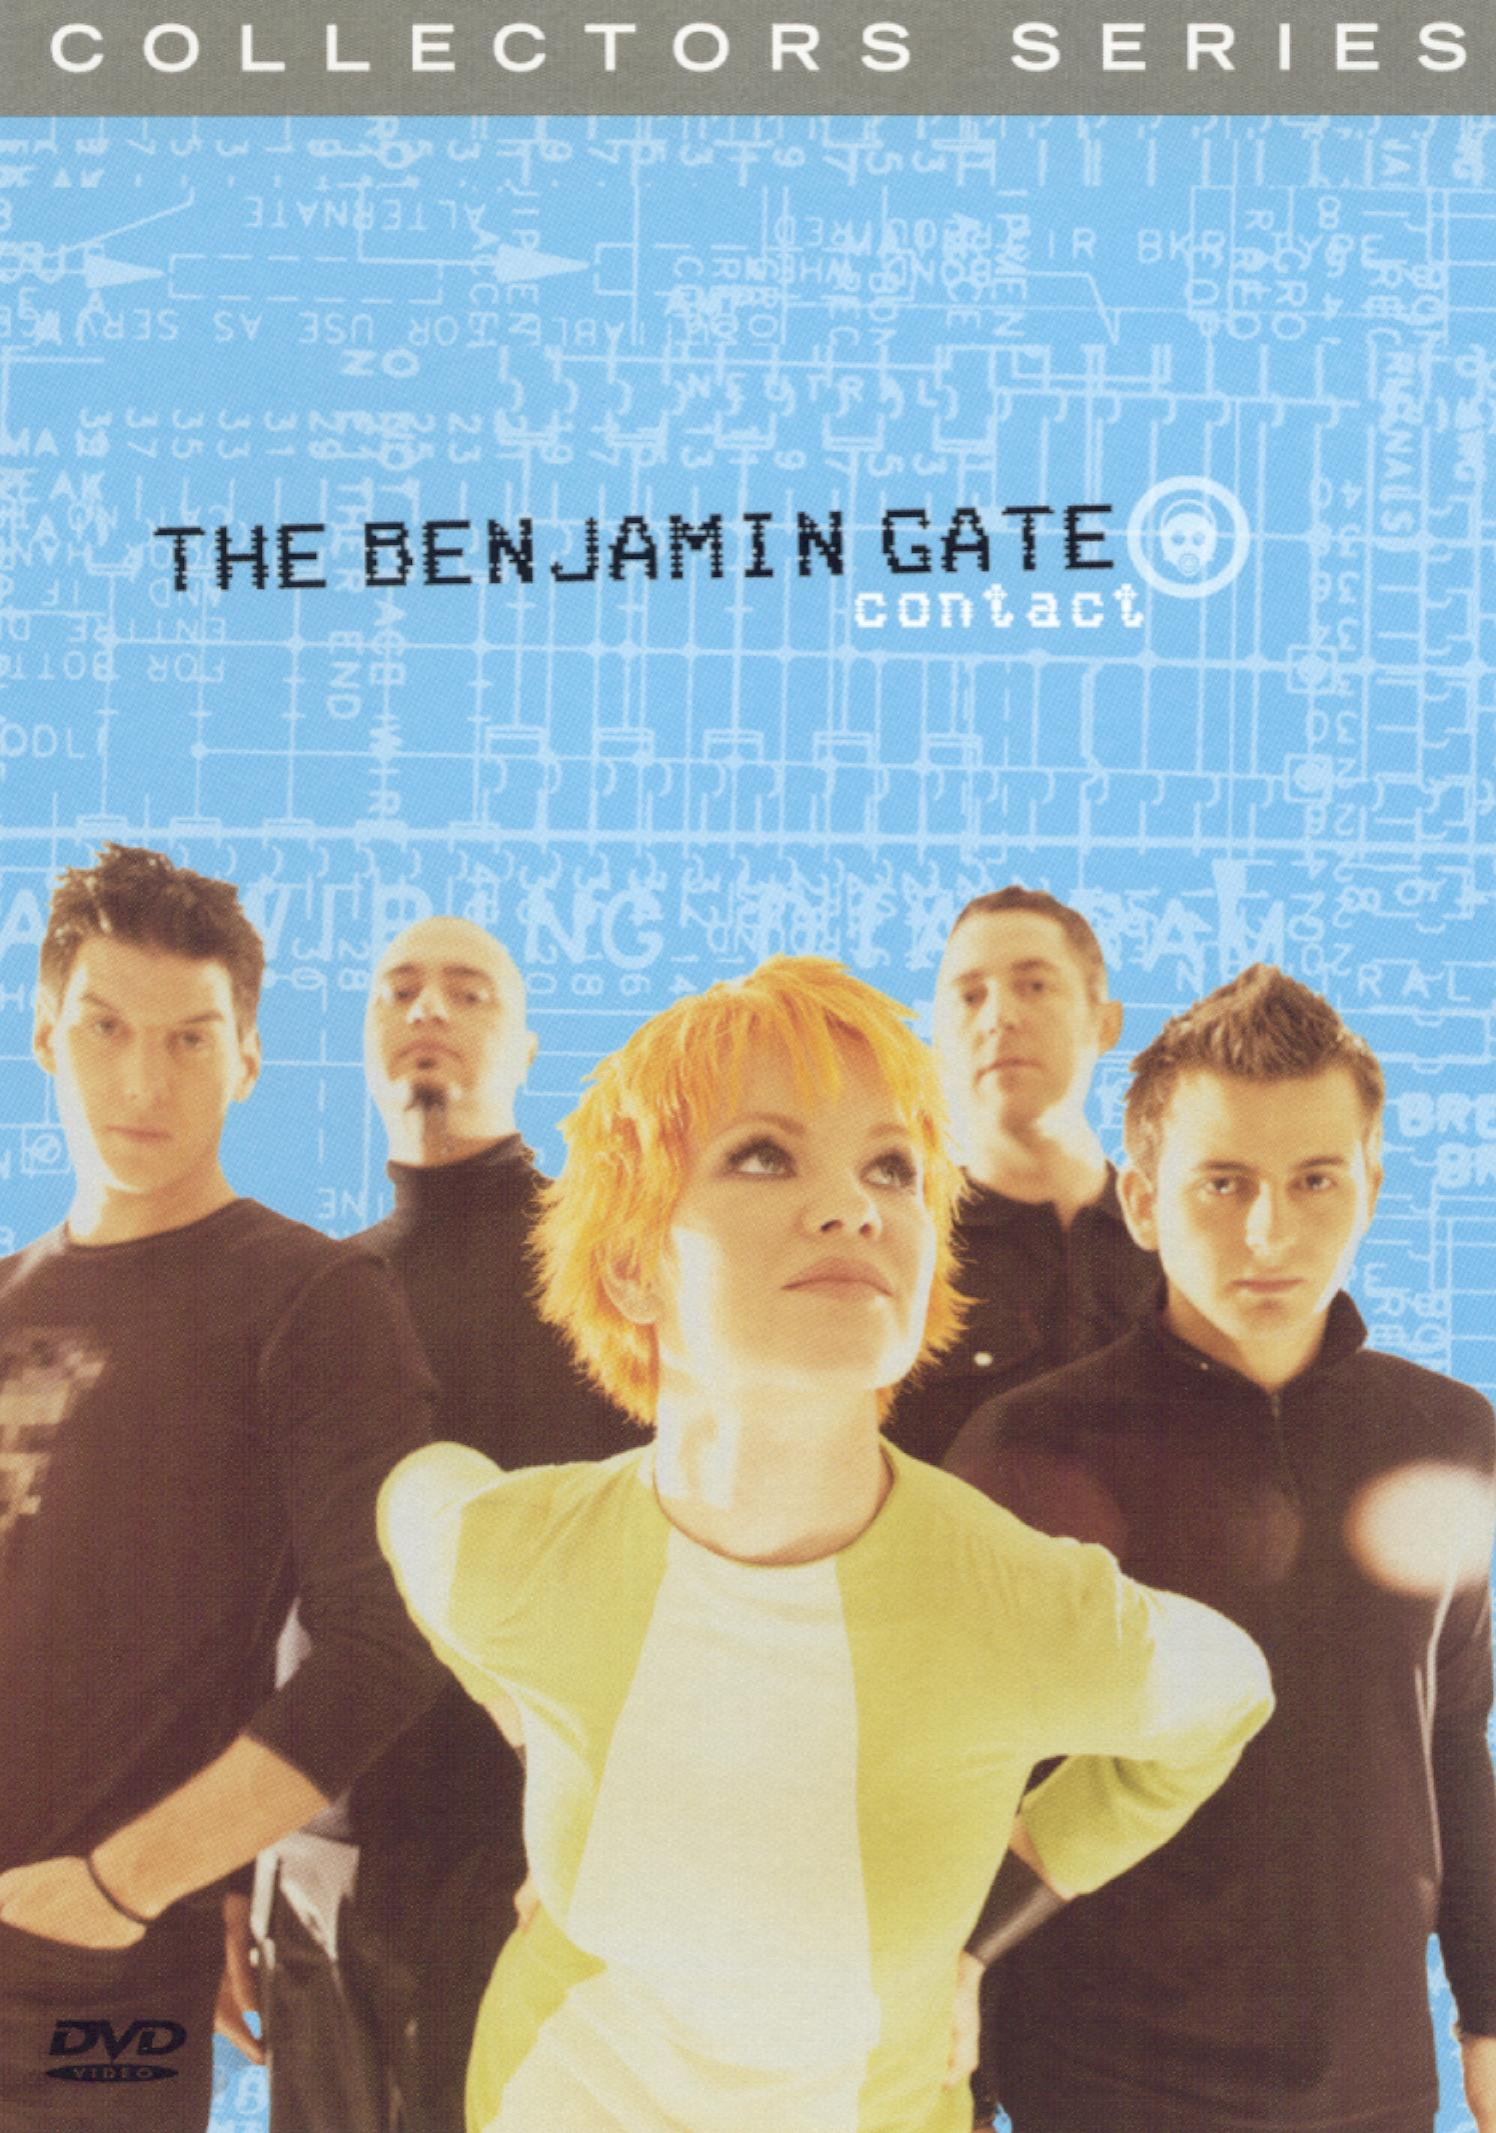 The Benjamin Gate: Contact